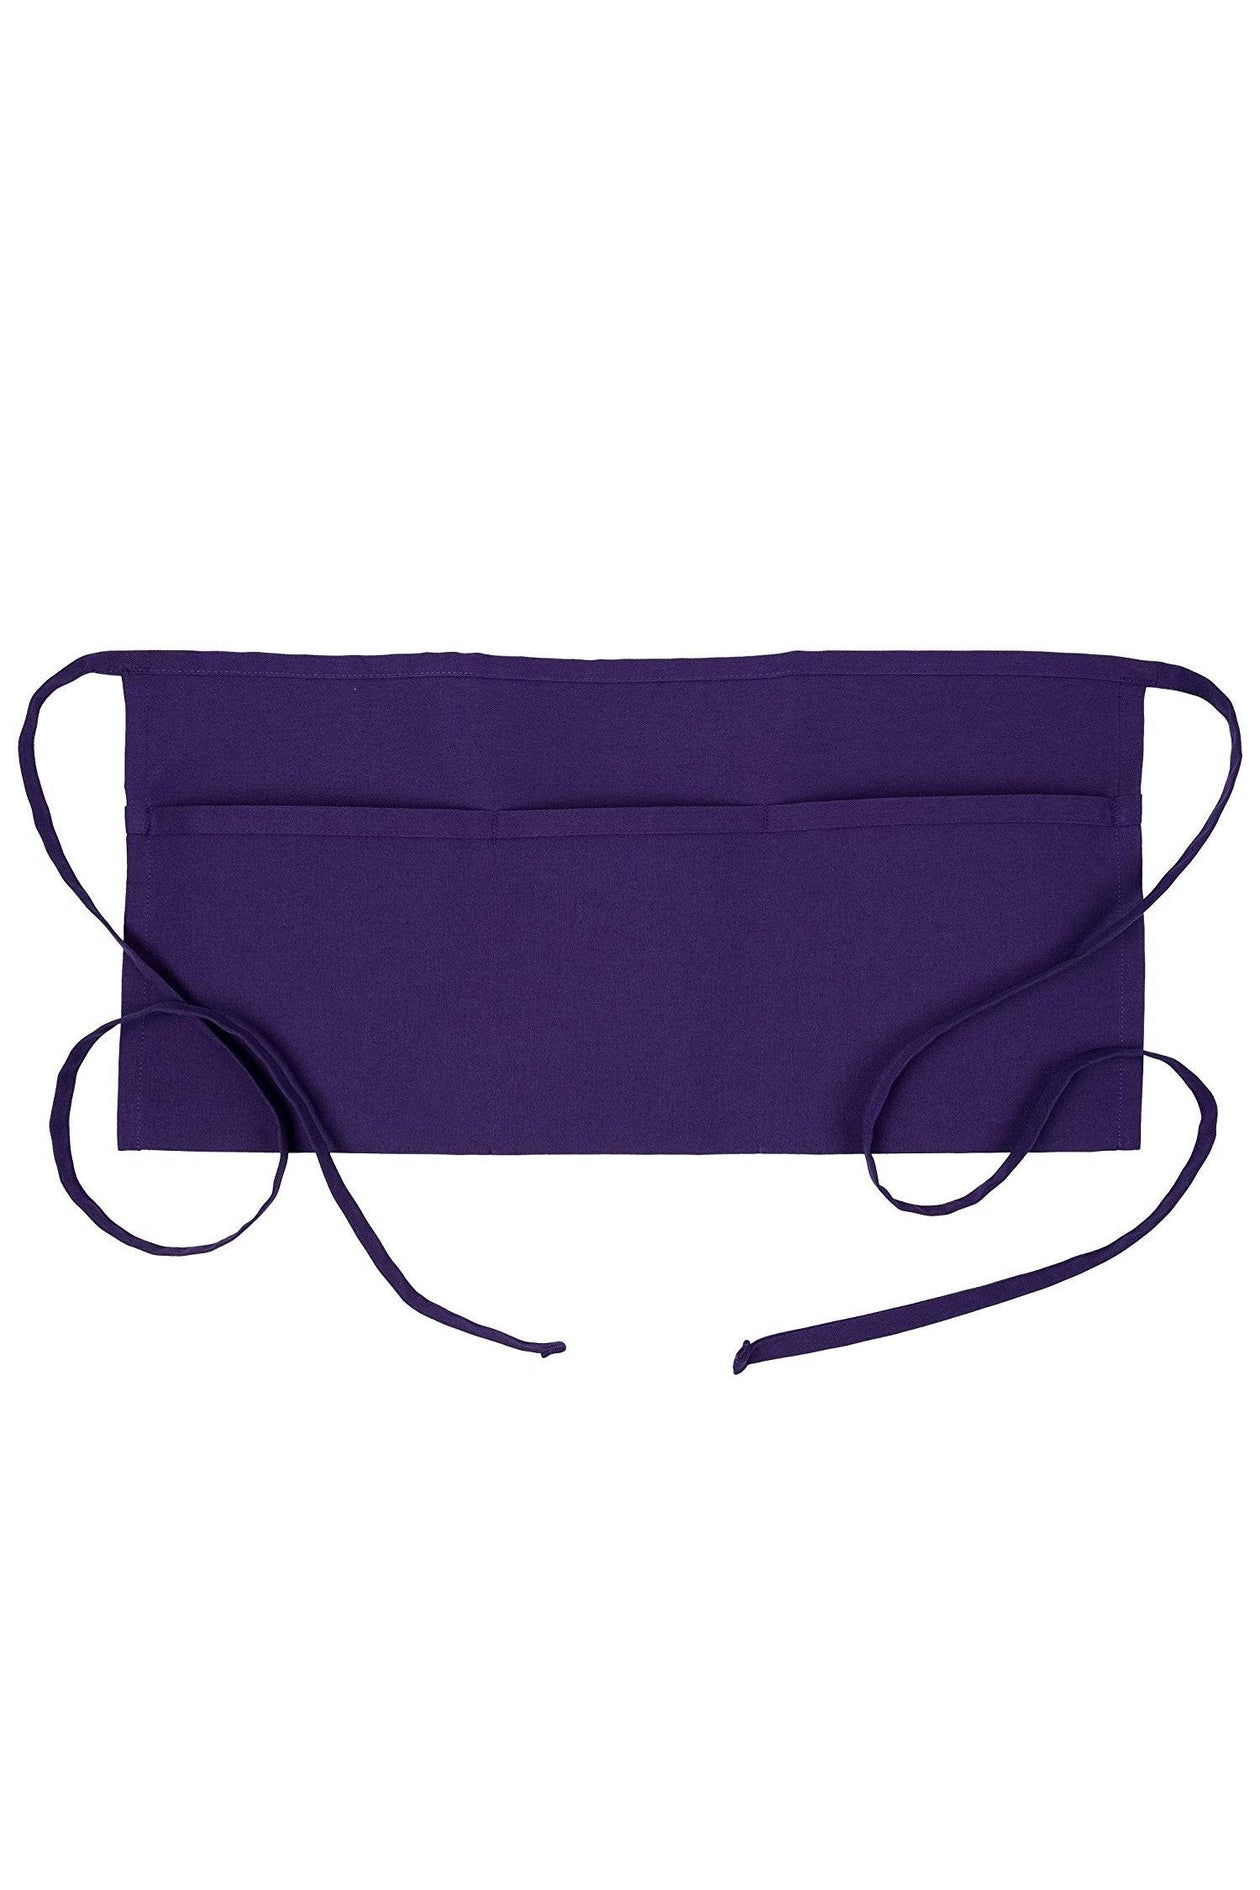 Purple Waist Apron (3 Pockets)